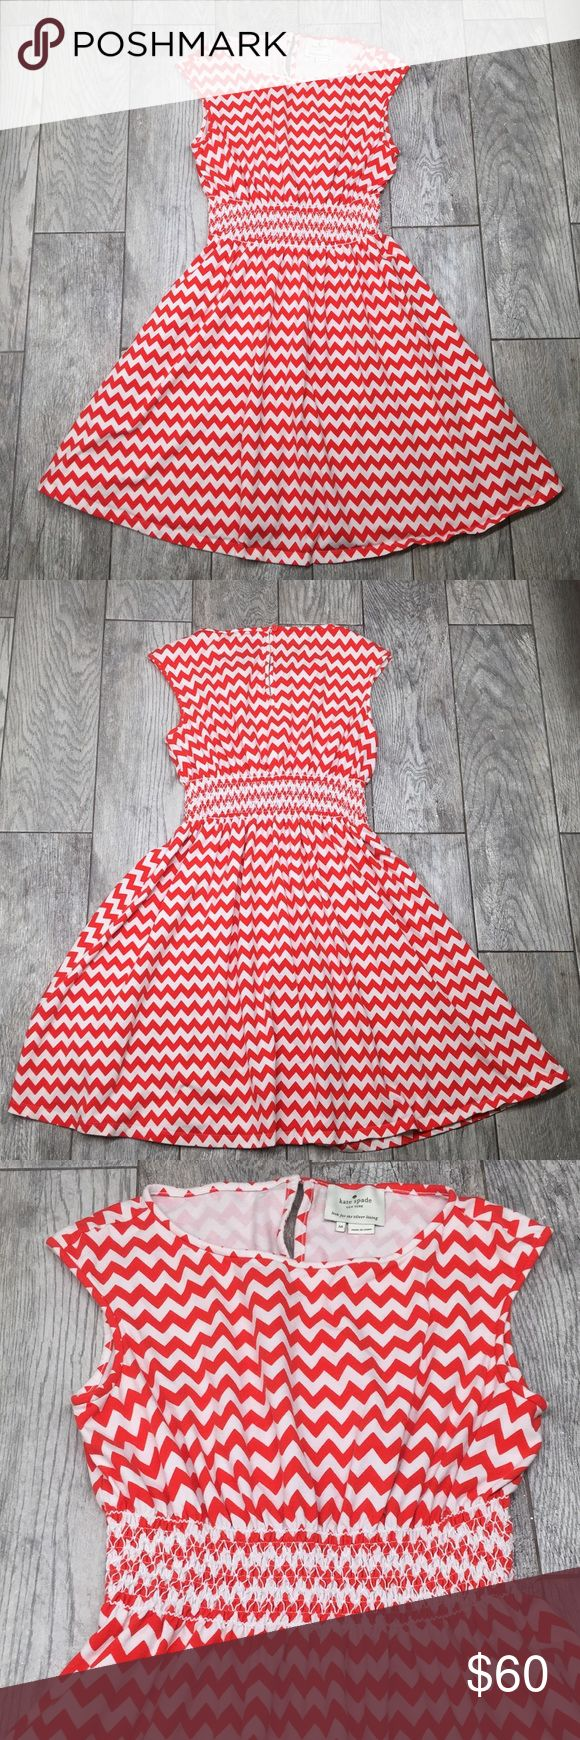 """Kate Spade Leora orange chevron dress Kate Spade Leora dress in Orange and white chevron. Cap sleeve cotton dress with nice stretch, nipped with wide, smocked waistline. Back keyhole with button and loop closure. EUC- no flaws or damage. Size medium. 39"""" length kate spade Dresses"""